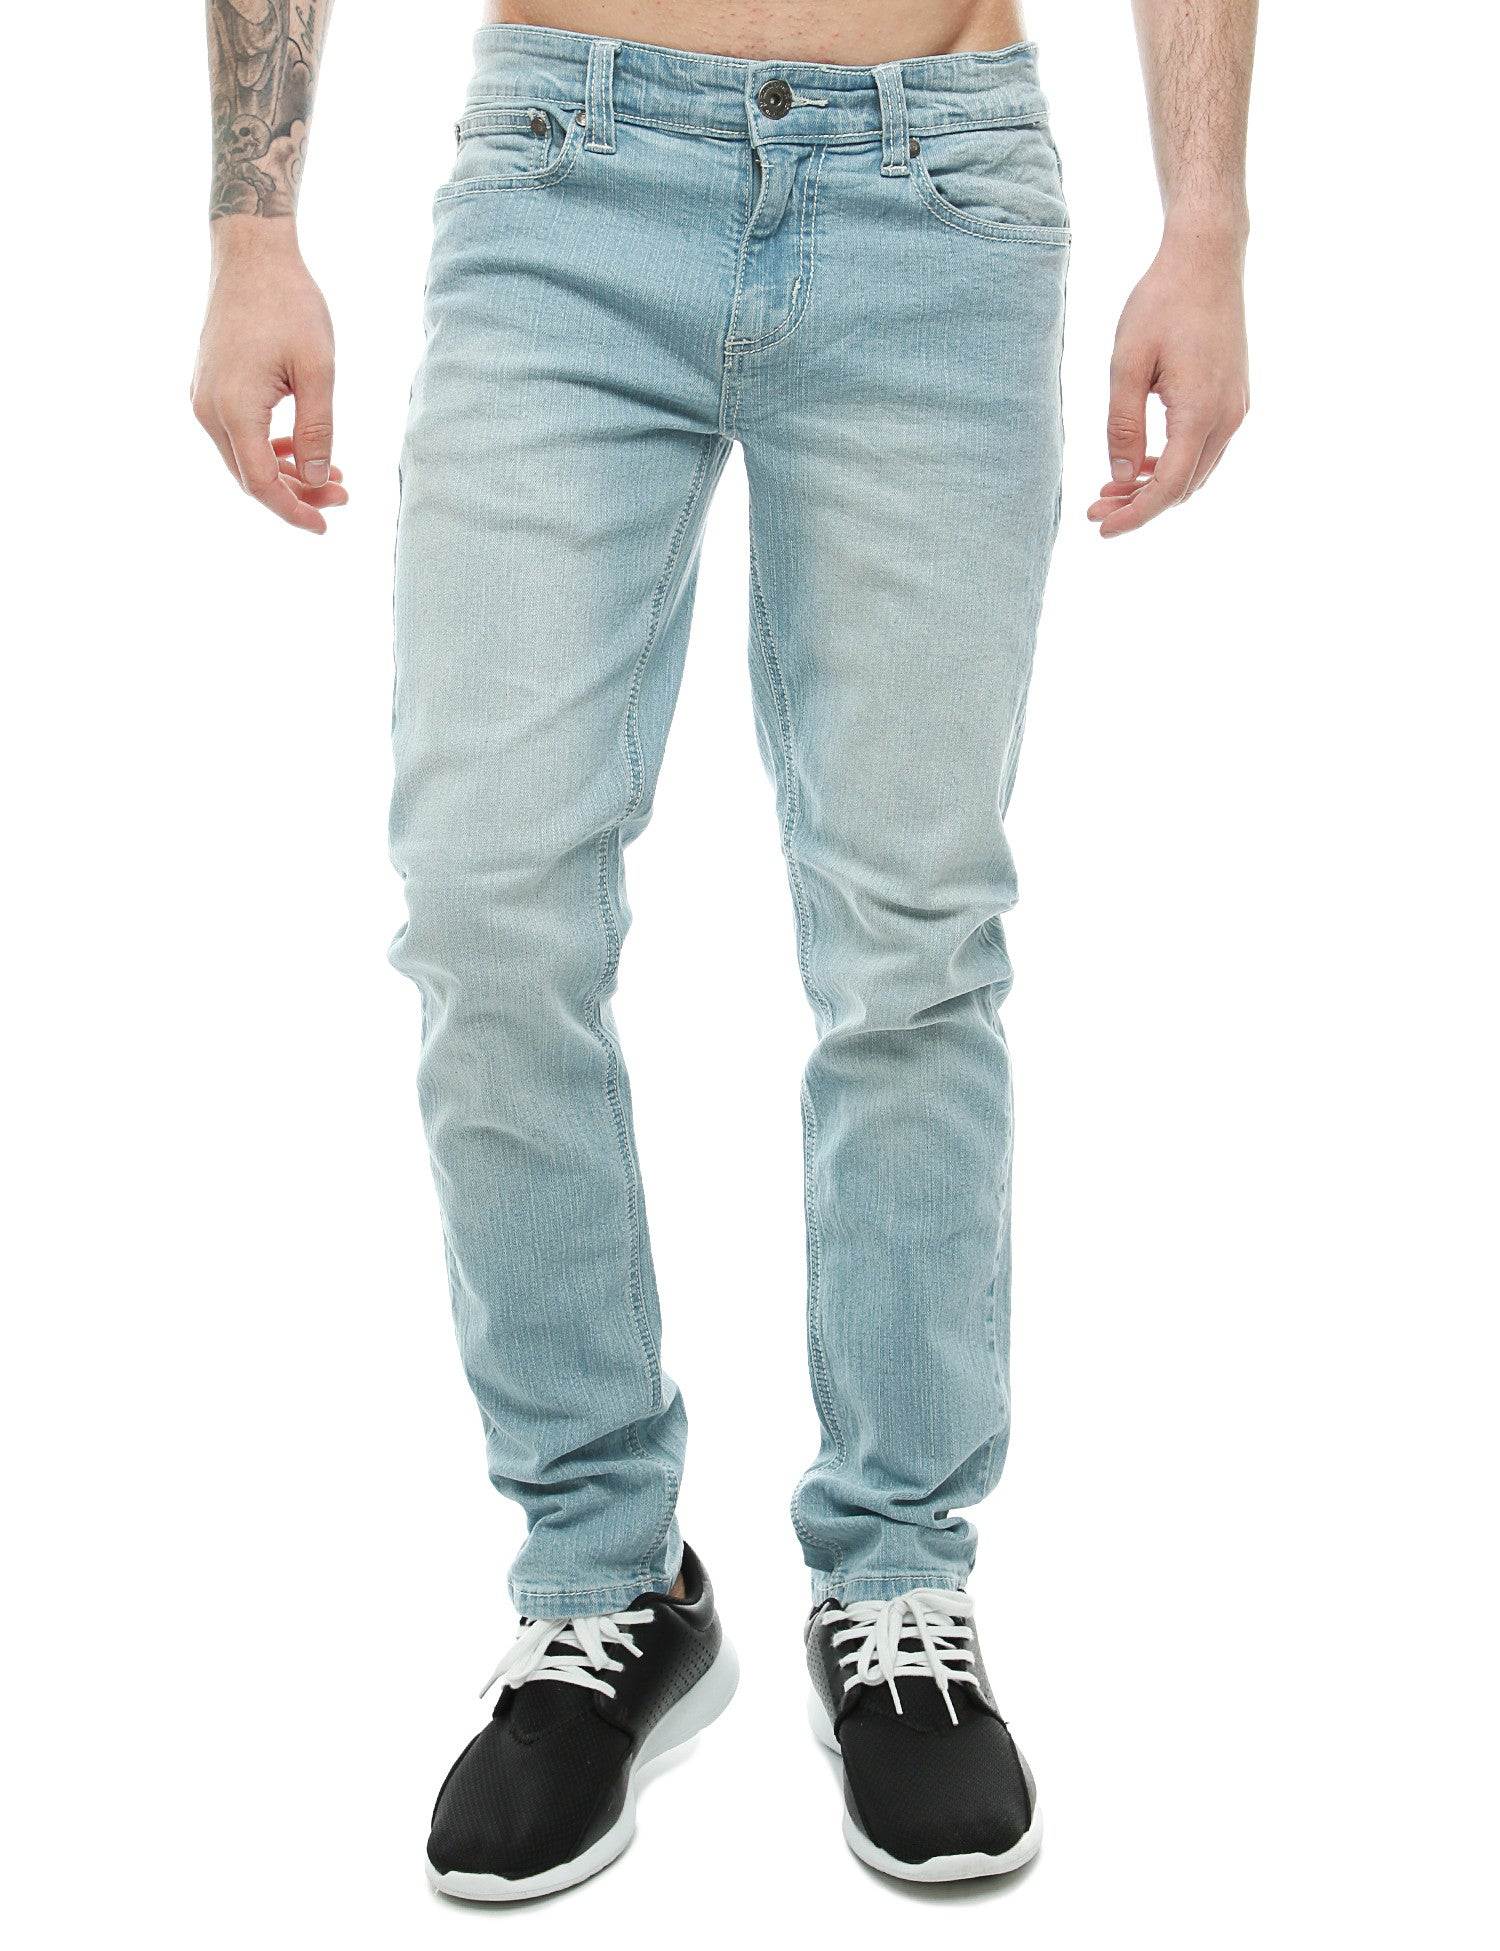 Royal Blue Jeans 8015 Lt. Blue